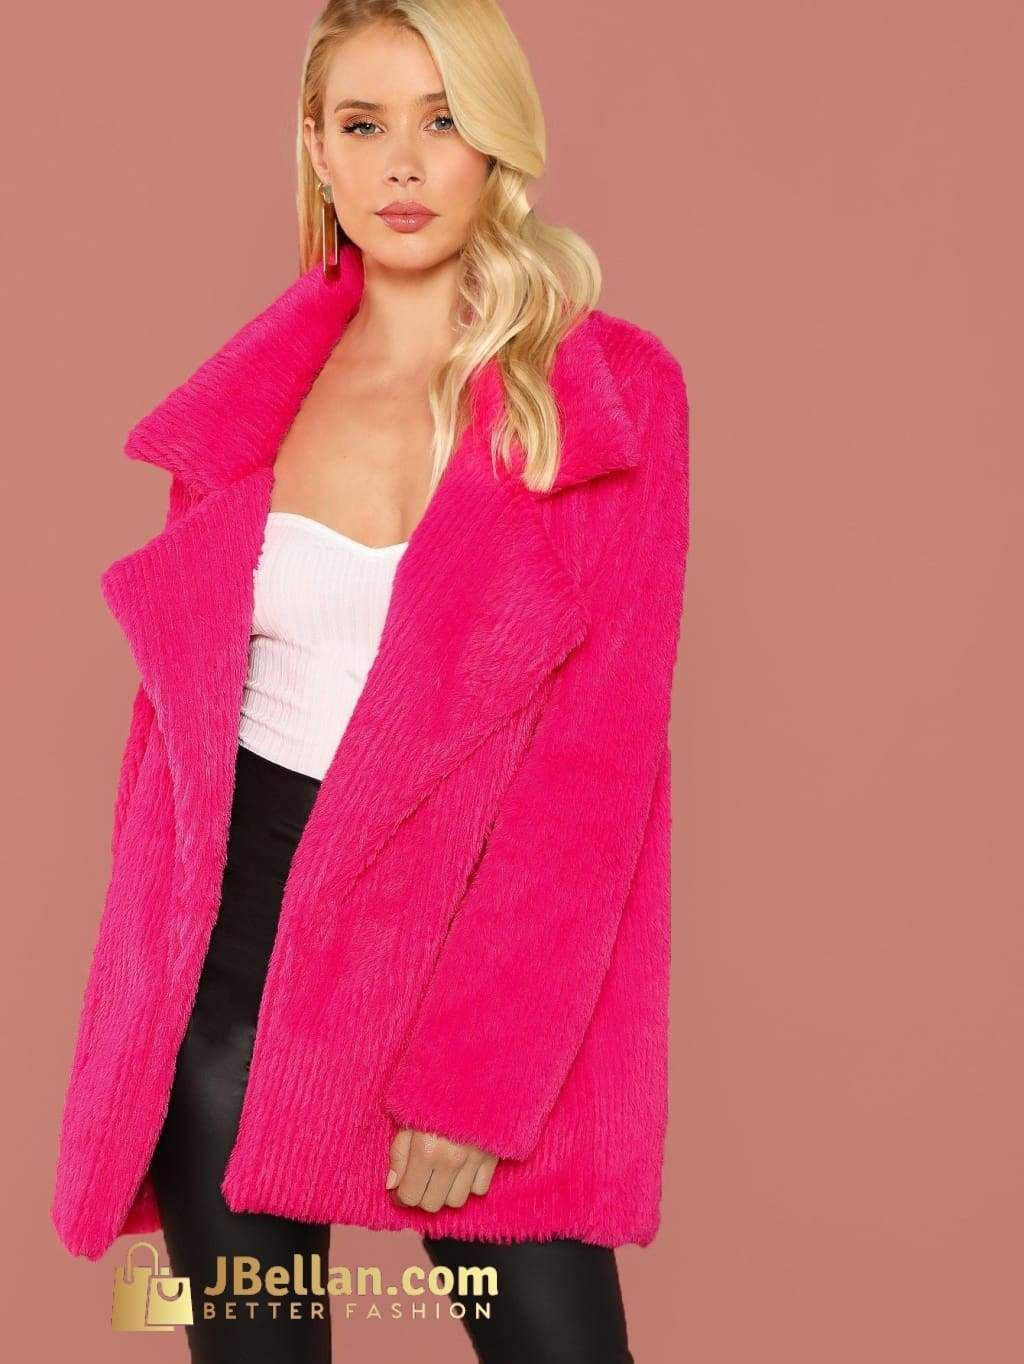 28aec31797f Jbellan Notch Collar Faux Fur Coat in 2019 | Products | Faux fur ...